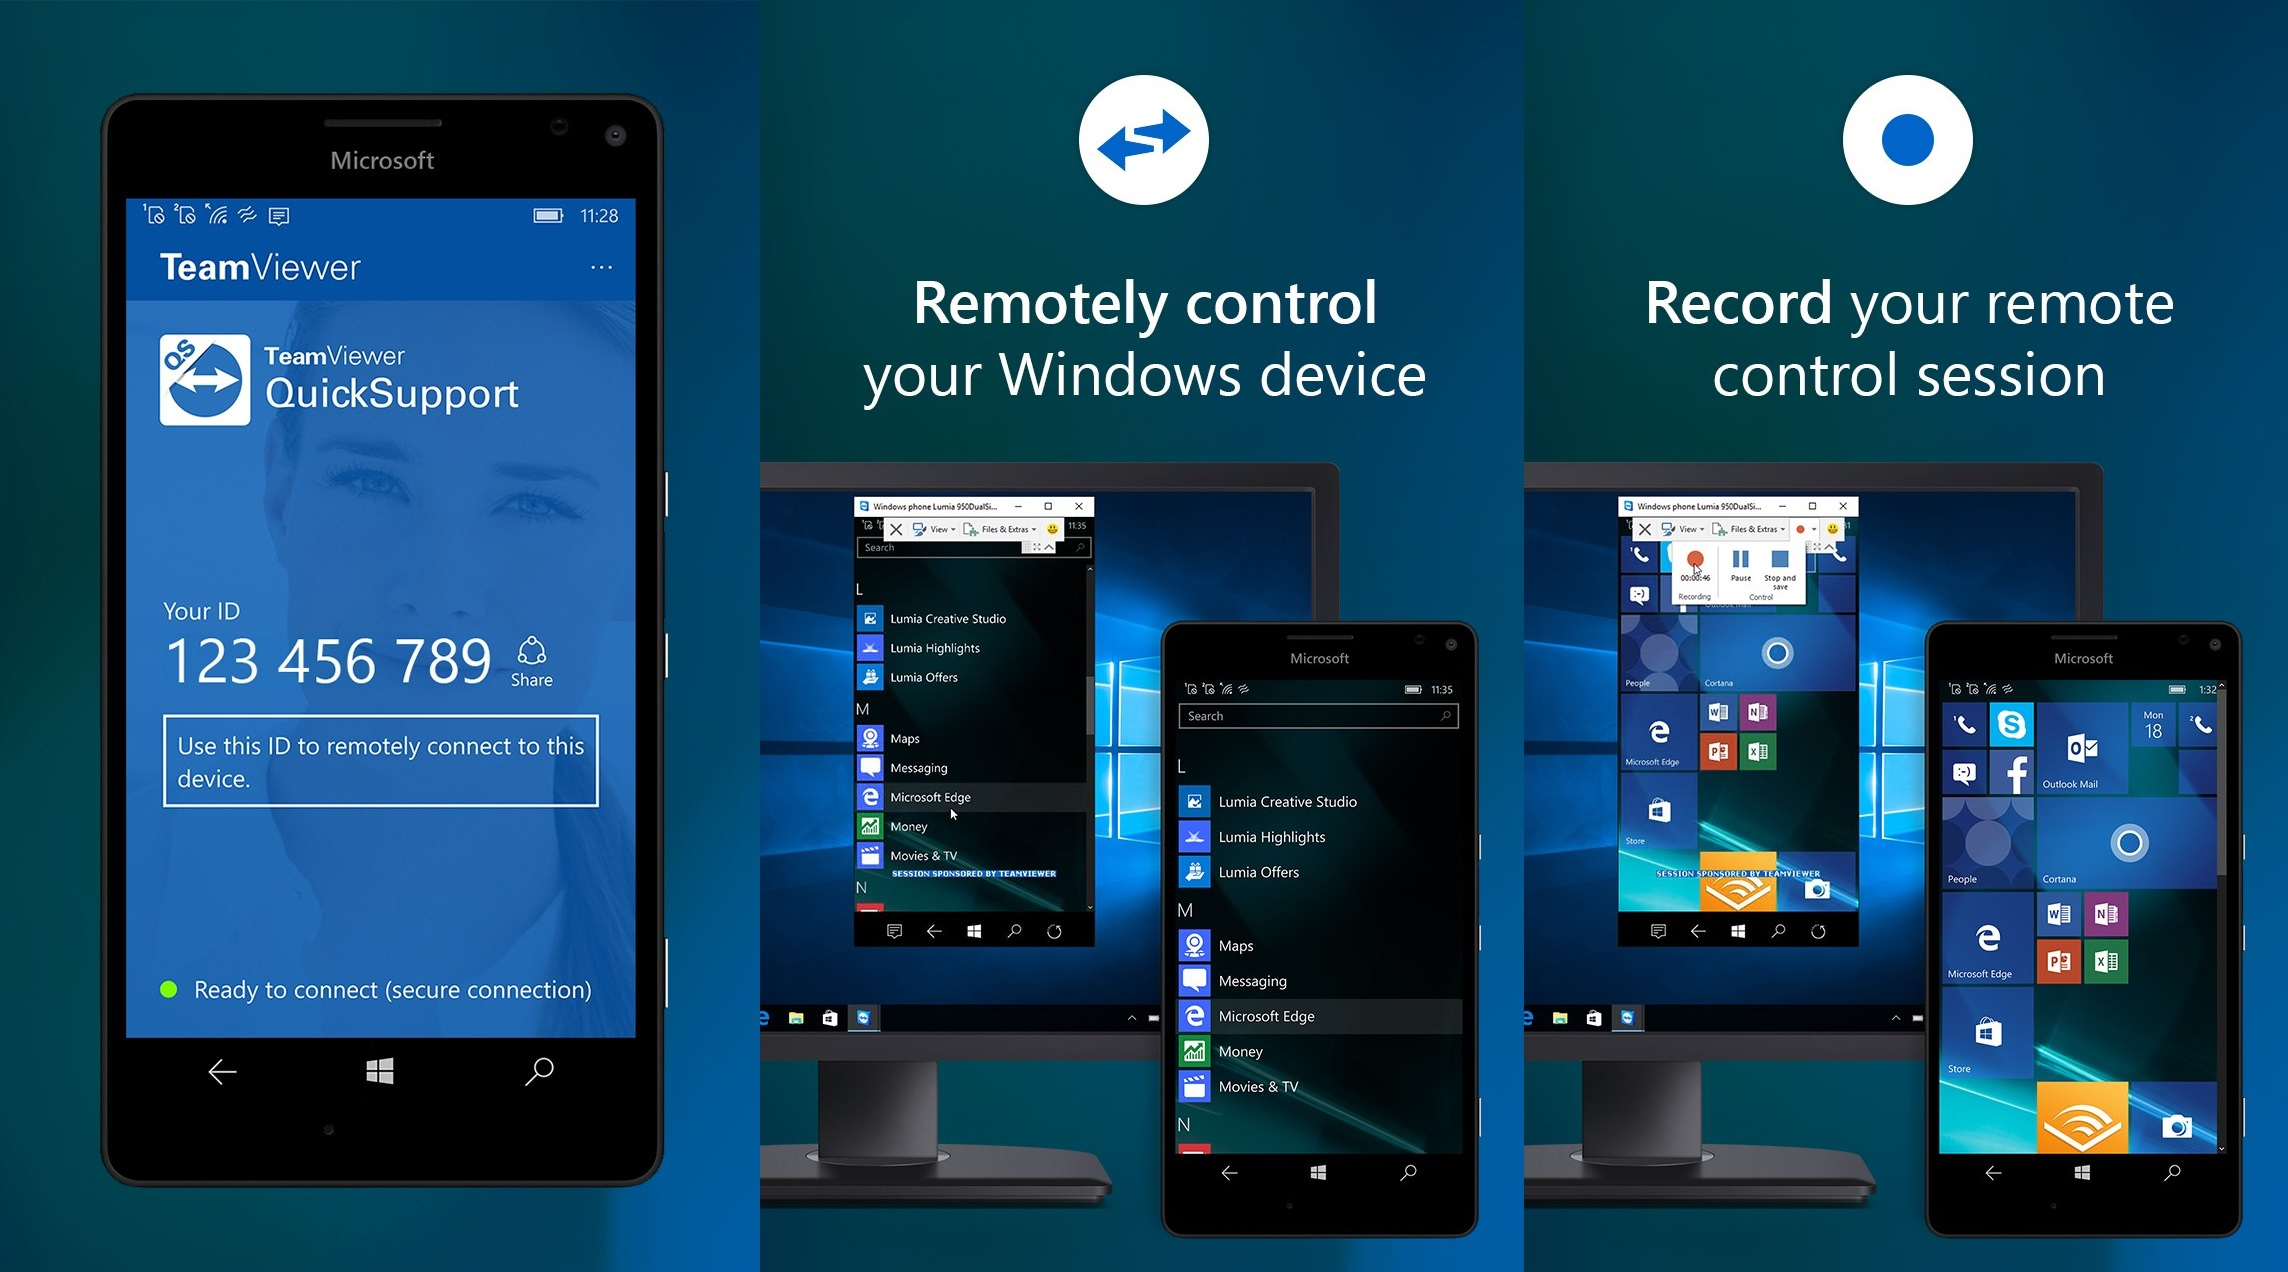 Upcoming TeamViewer QuickSupport app will allow you to remote control a Windows Mobile device